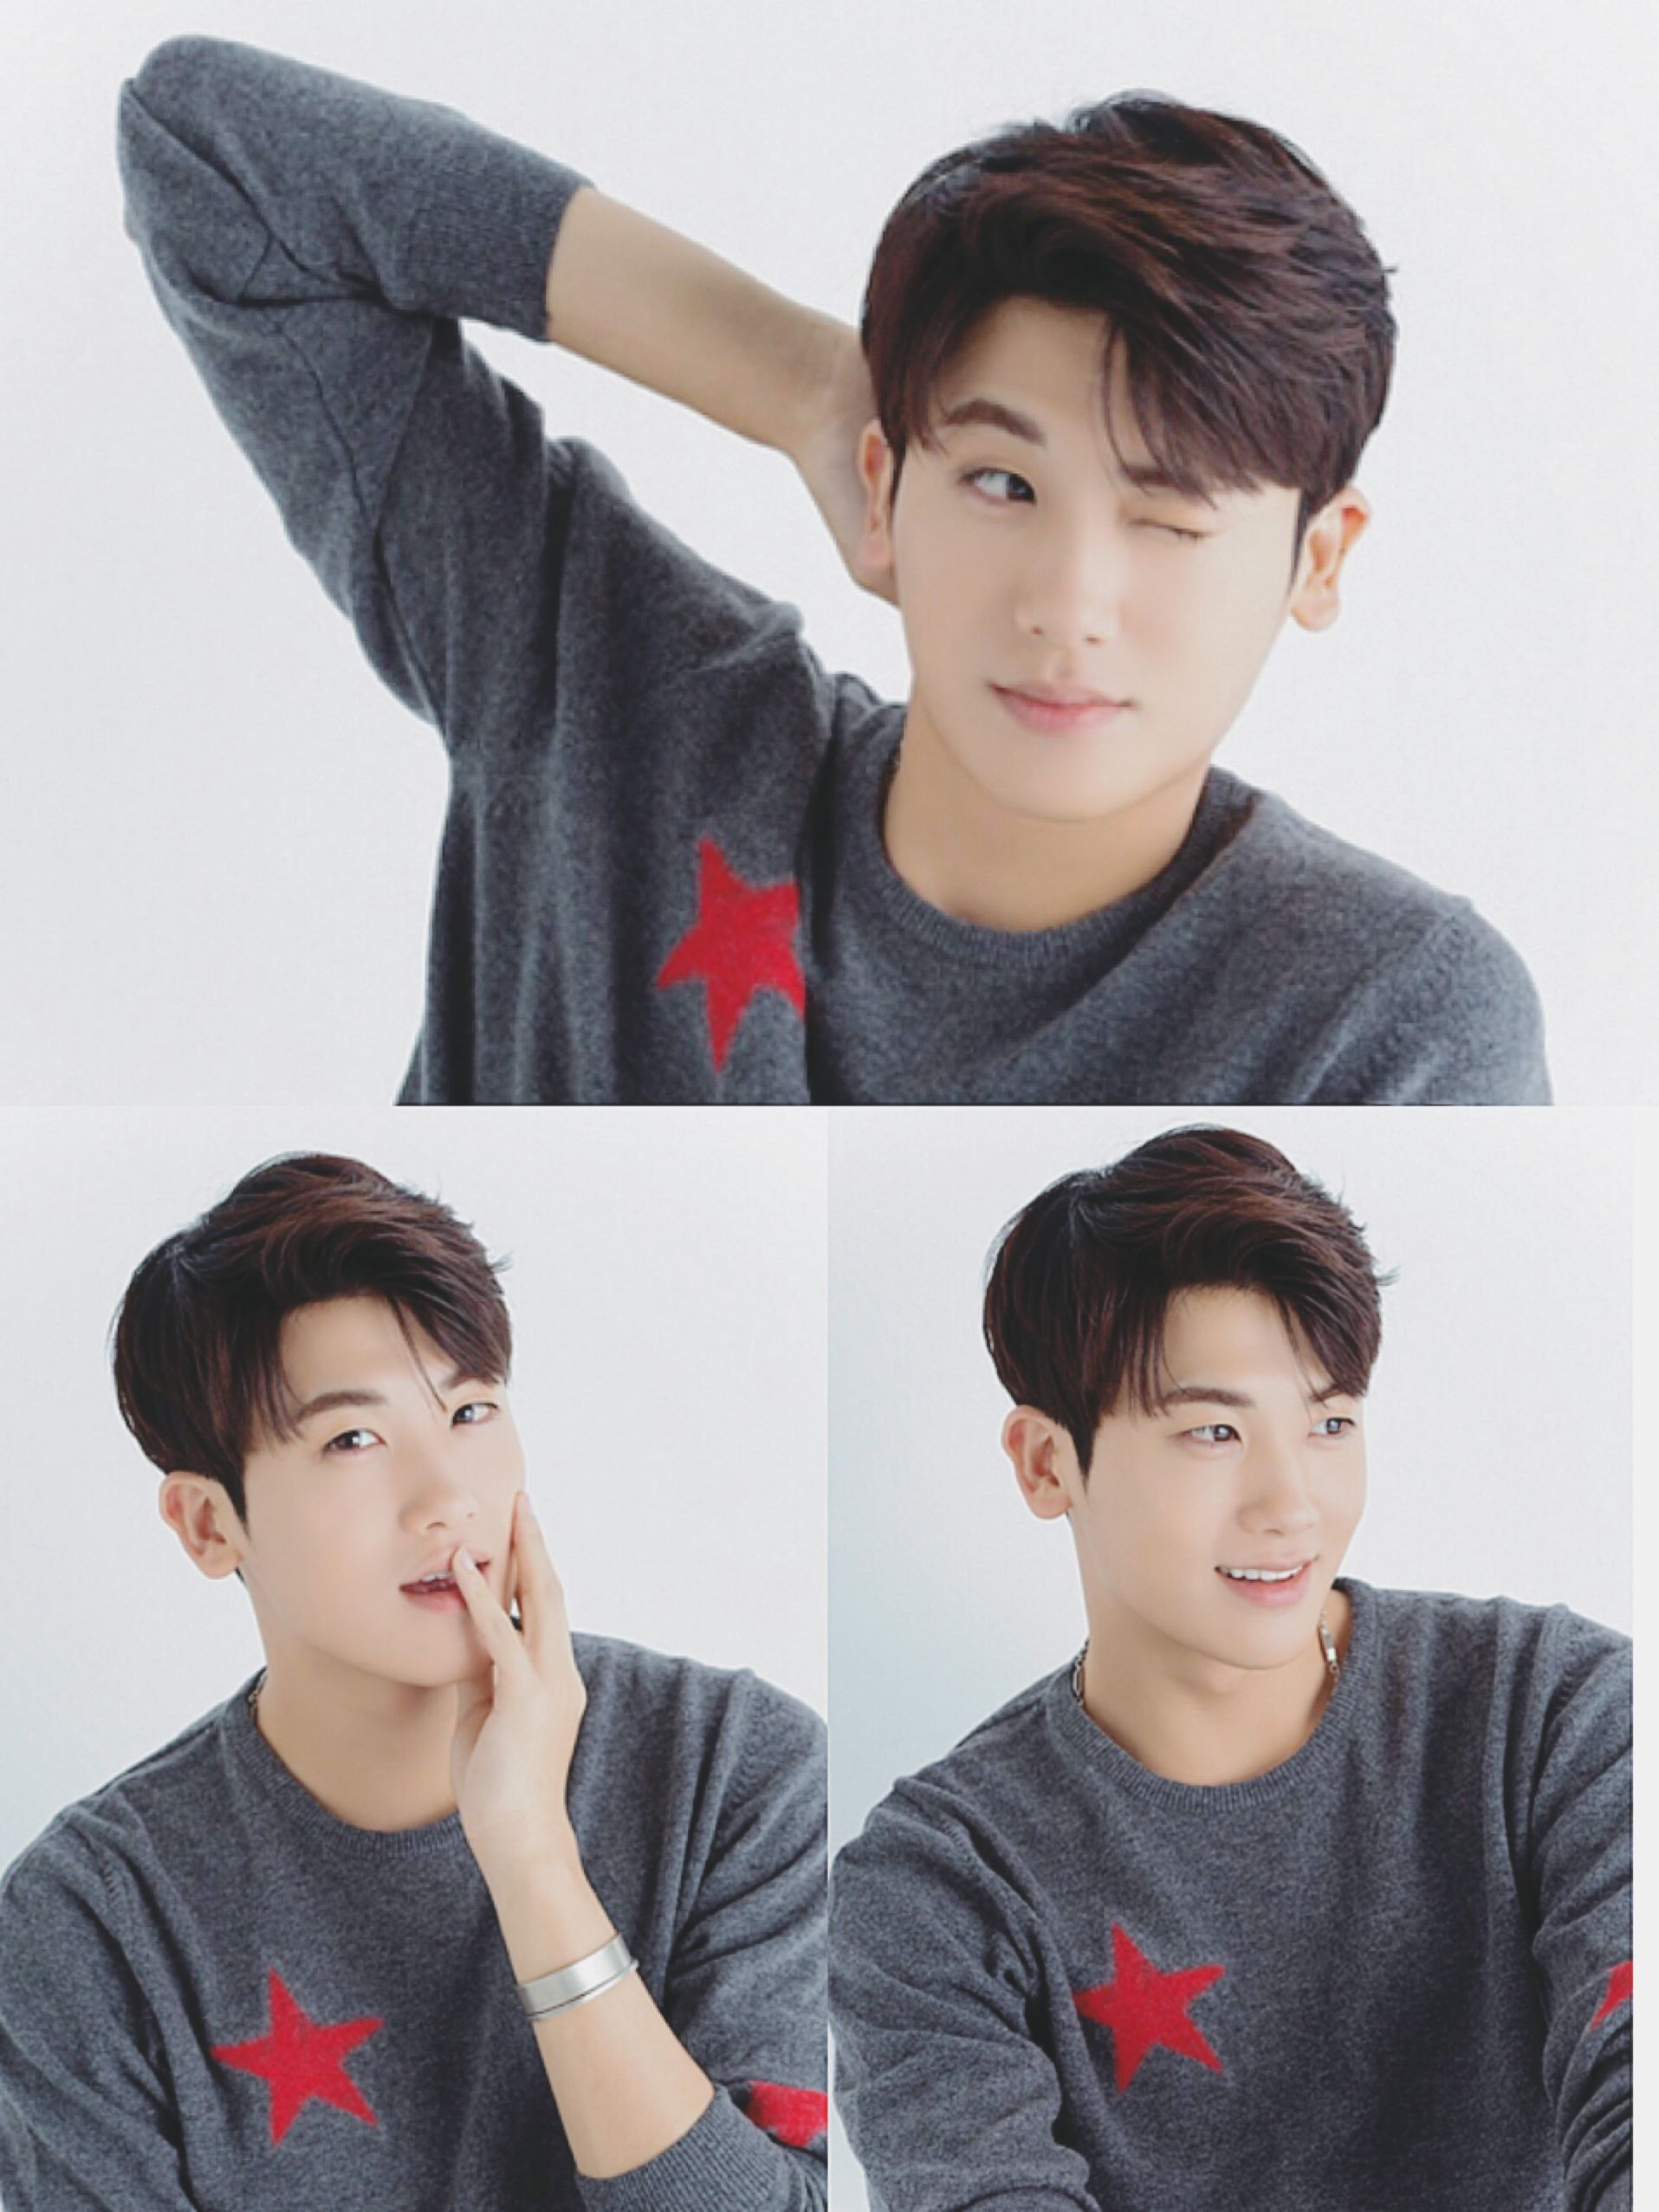 Hyungsik Feel Good See U Wt Wink Eyes To Whom Dont Care As